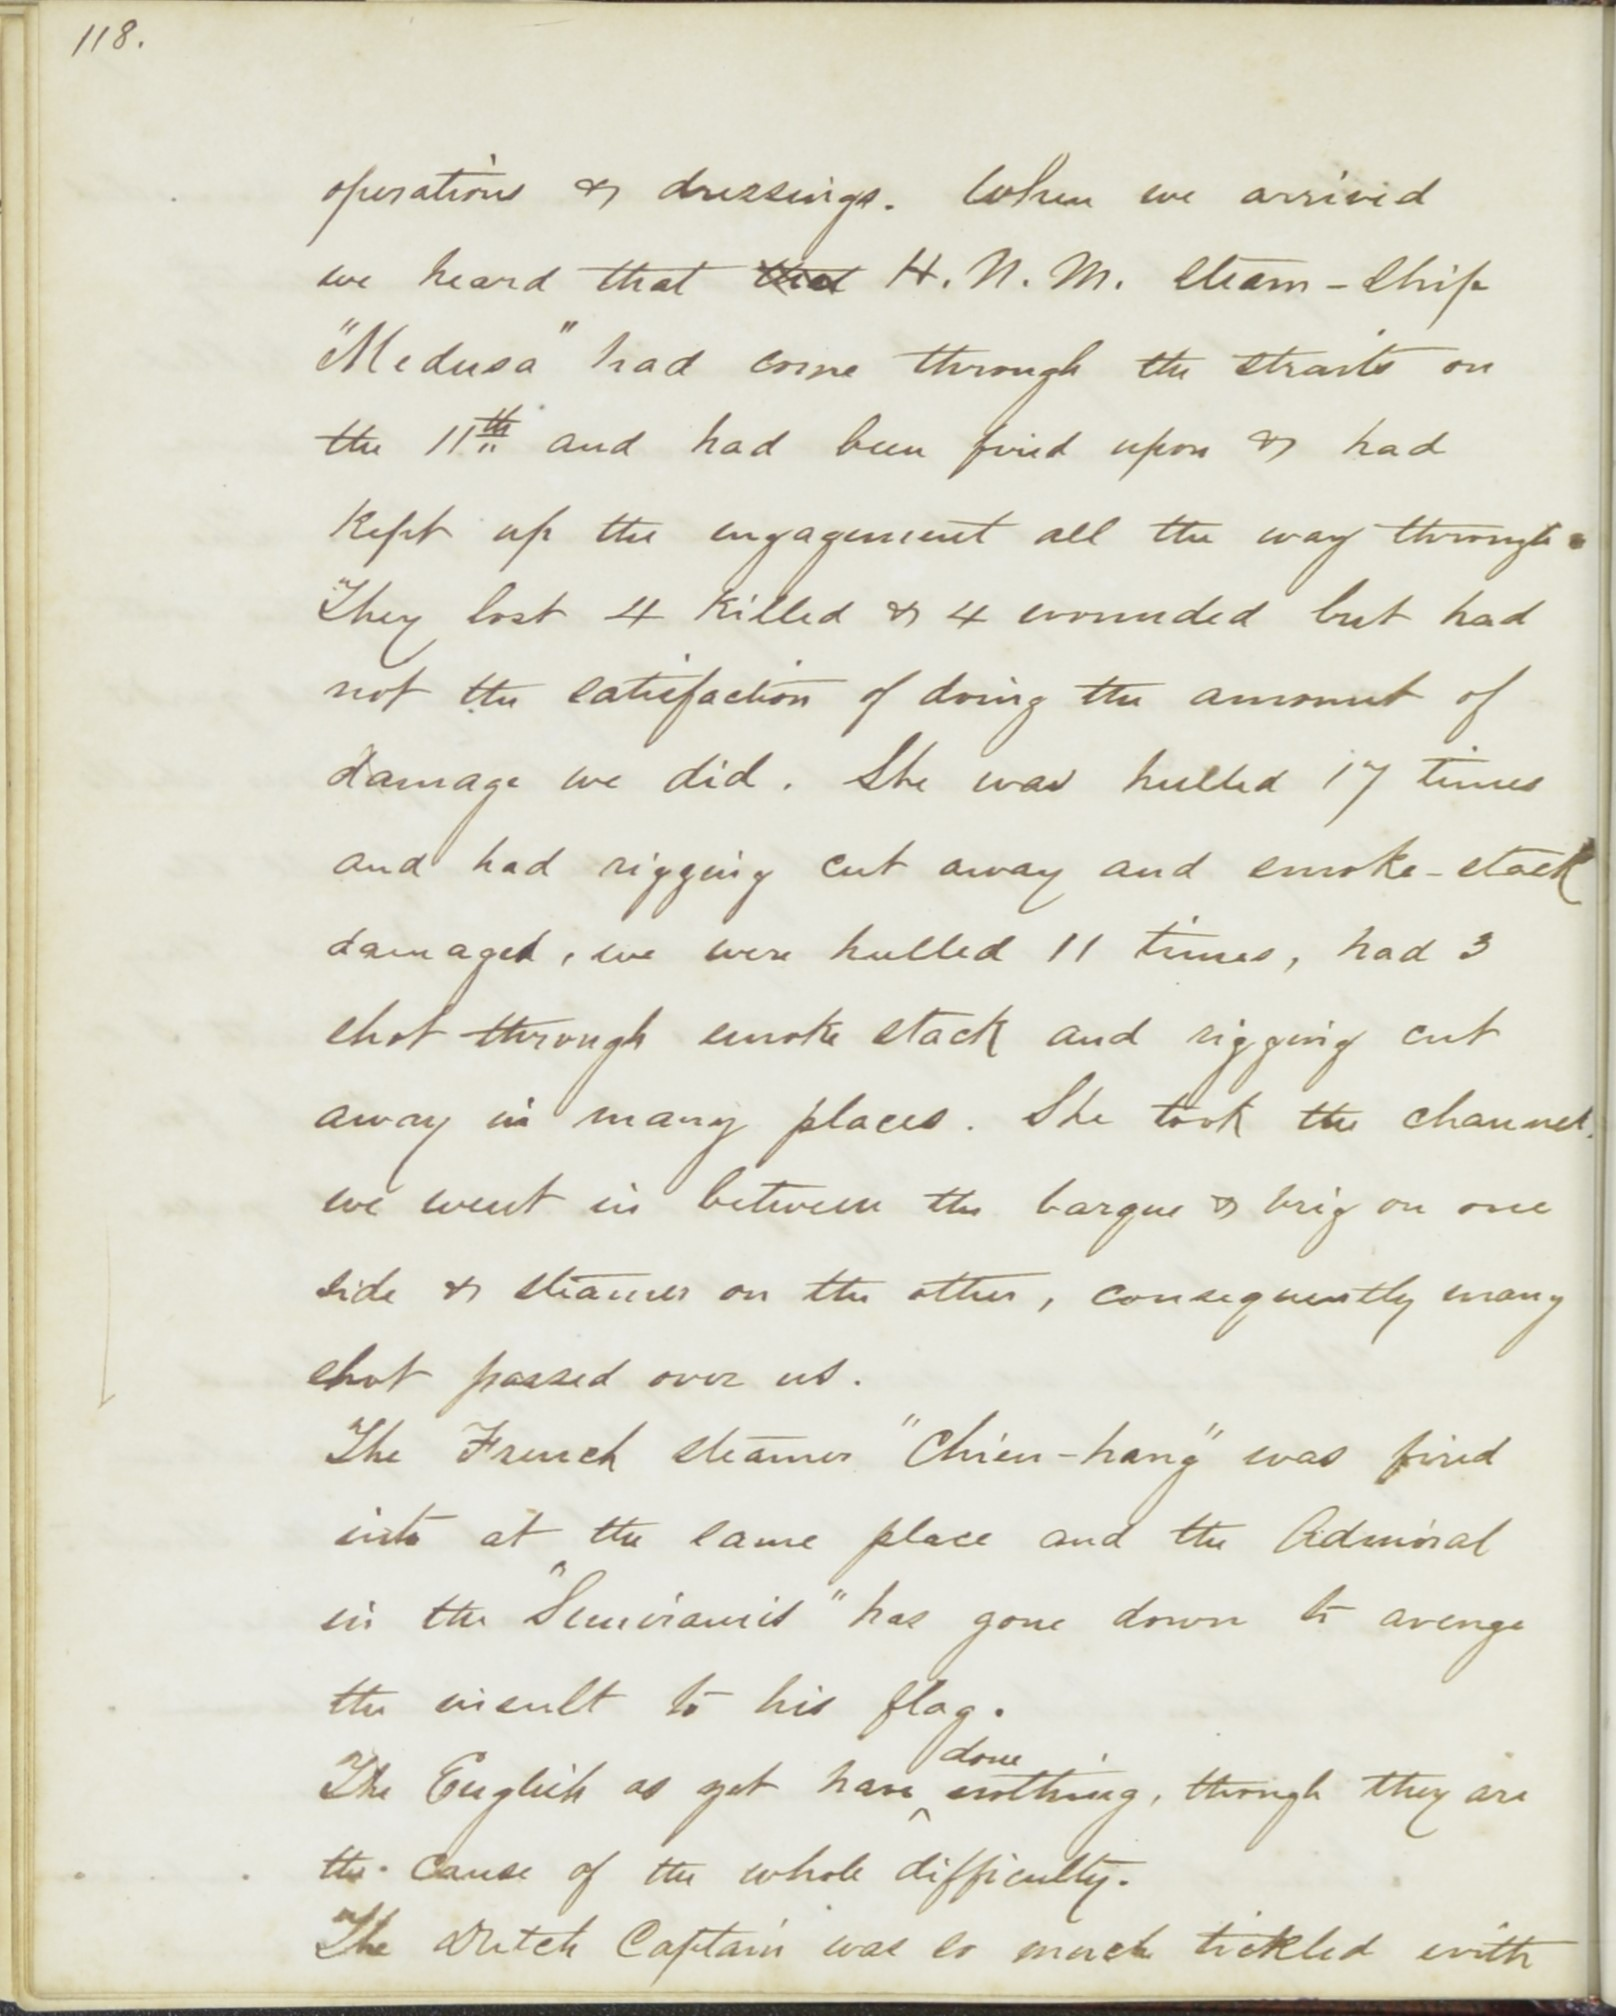 Denby diary entry July 20, 1863